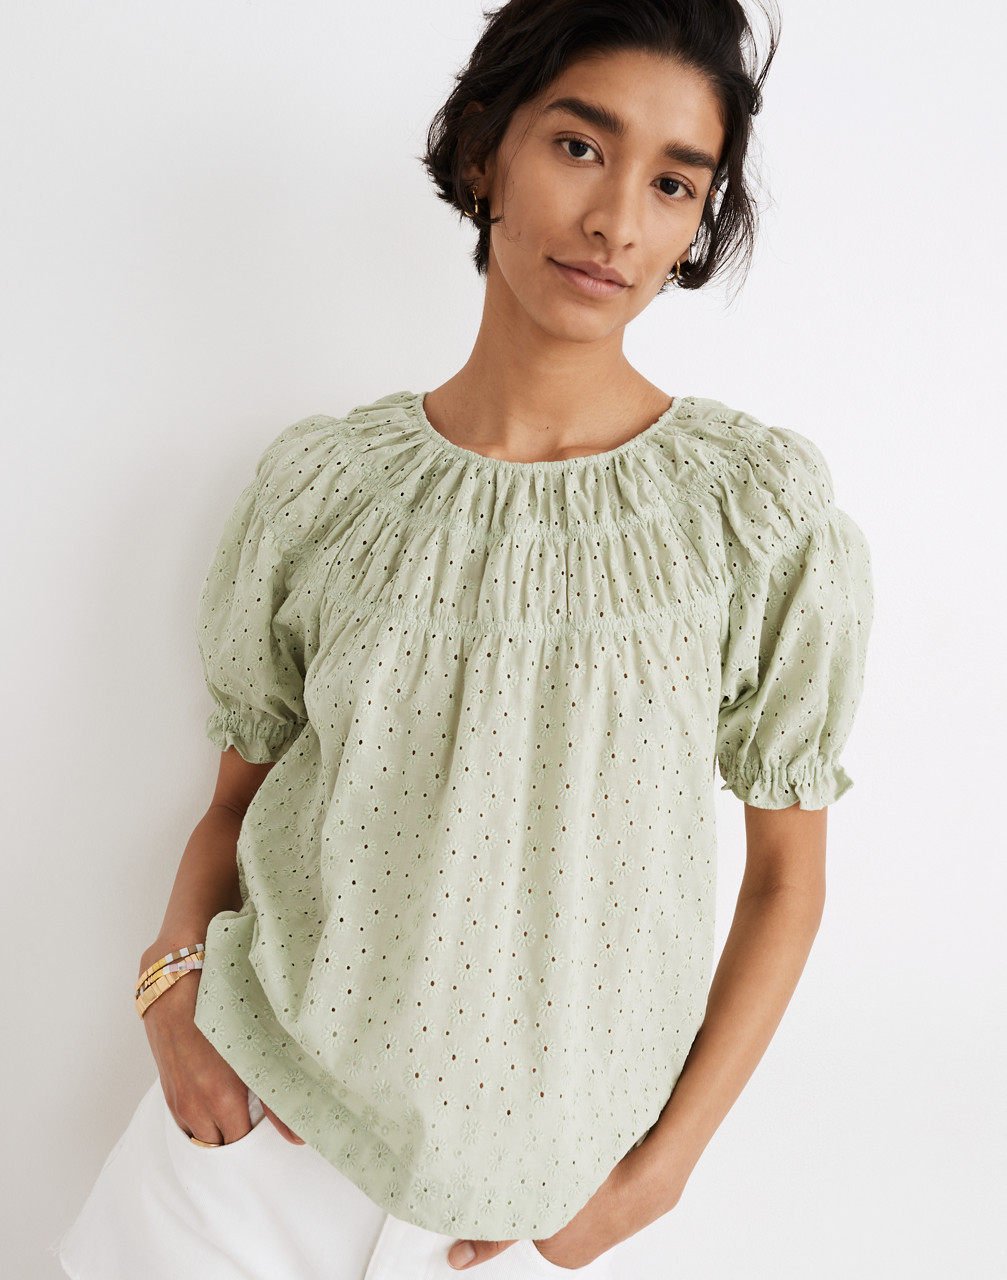 Edwardian Blouses |  Lace Blouses & Sweaters Daisy Embroidered Shirred Puff-Sleeve Top $88.00 AT vintagedancer.com